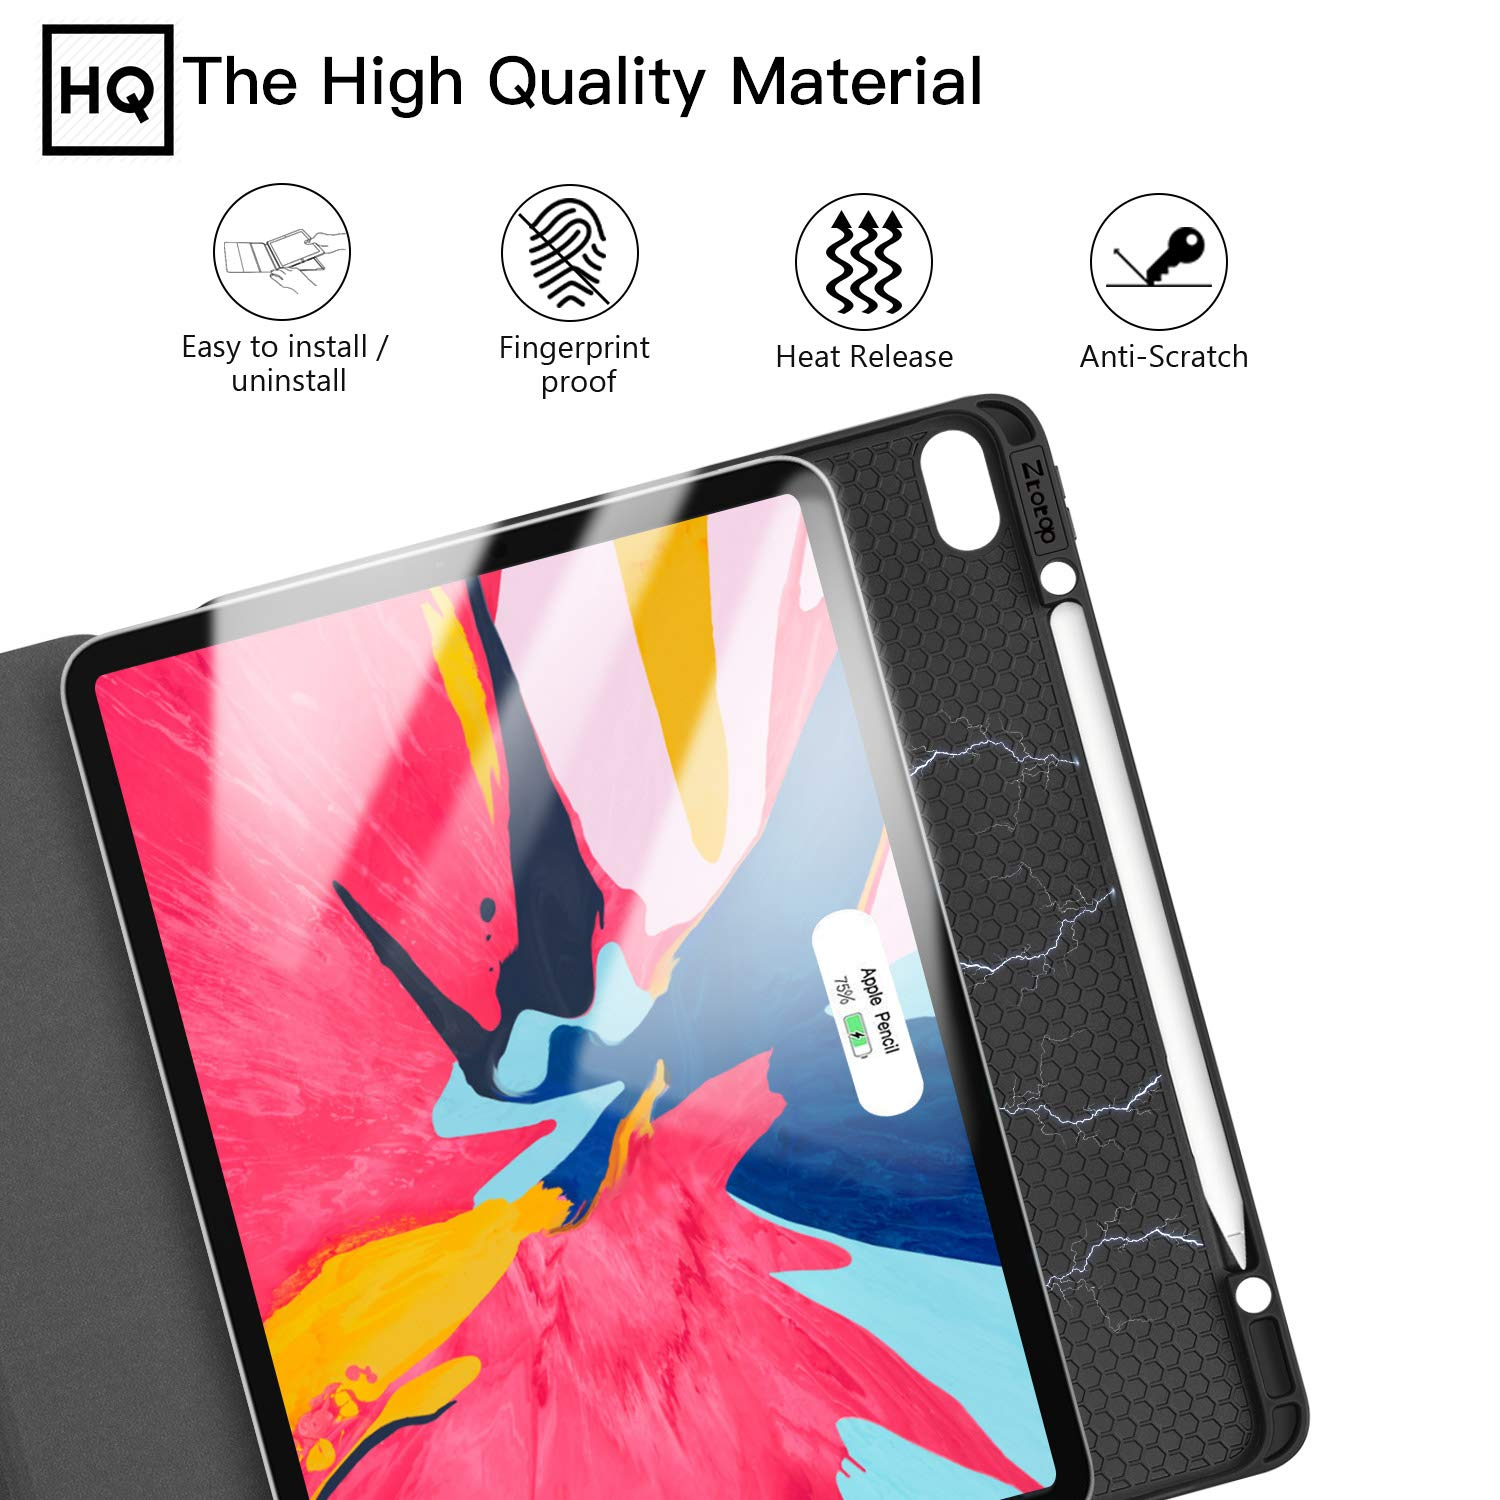 Ztotop Case for iPad Pro 12.9 Inch 2018, Full Body Protective Rugged Shockproof Case with iPad Pencil Holder, Auto Sleep/Wake, Support iPad Pencil Charging for iPad Pro 12.9 Inch 3rd Gen - Black by Ztotop (Image #8)